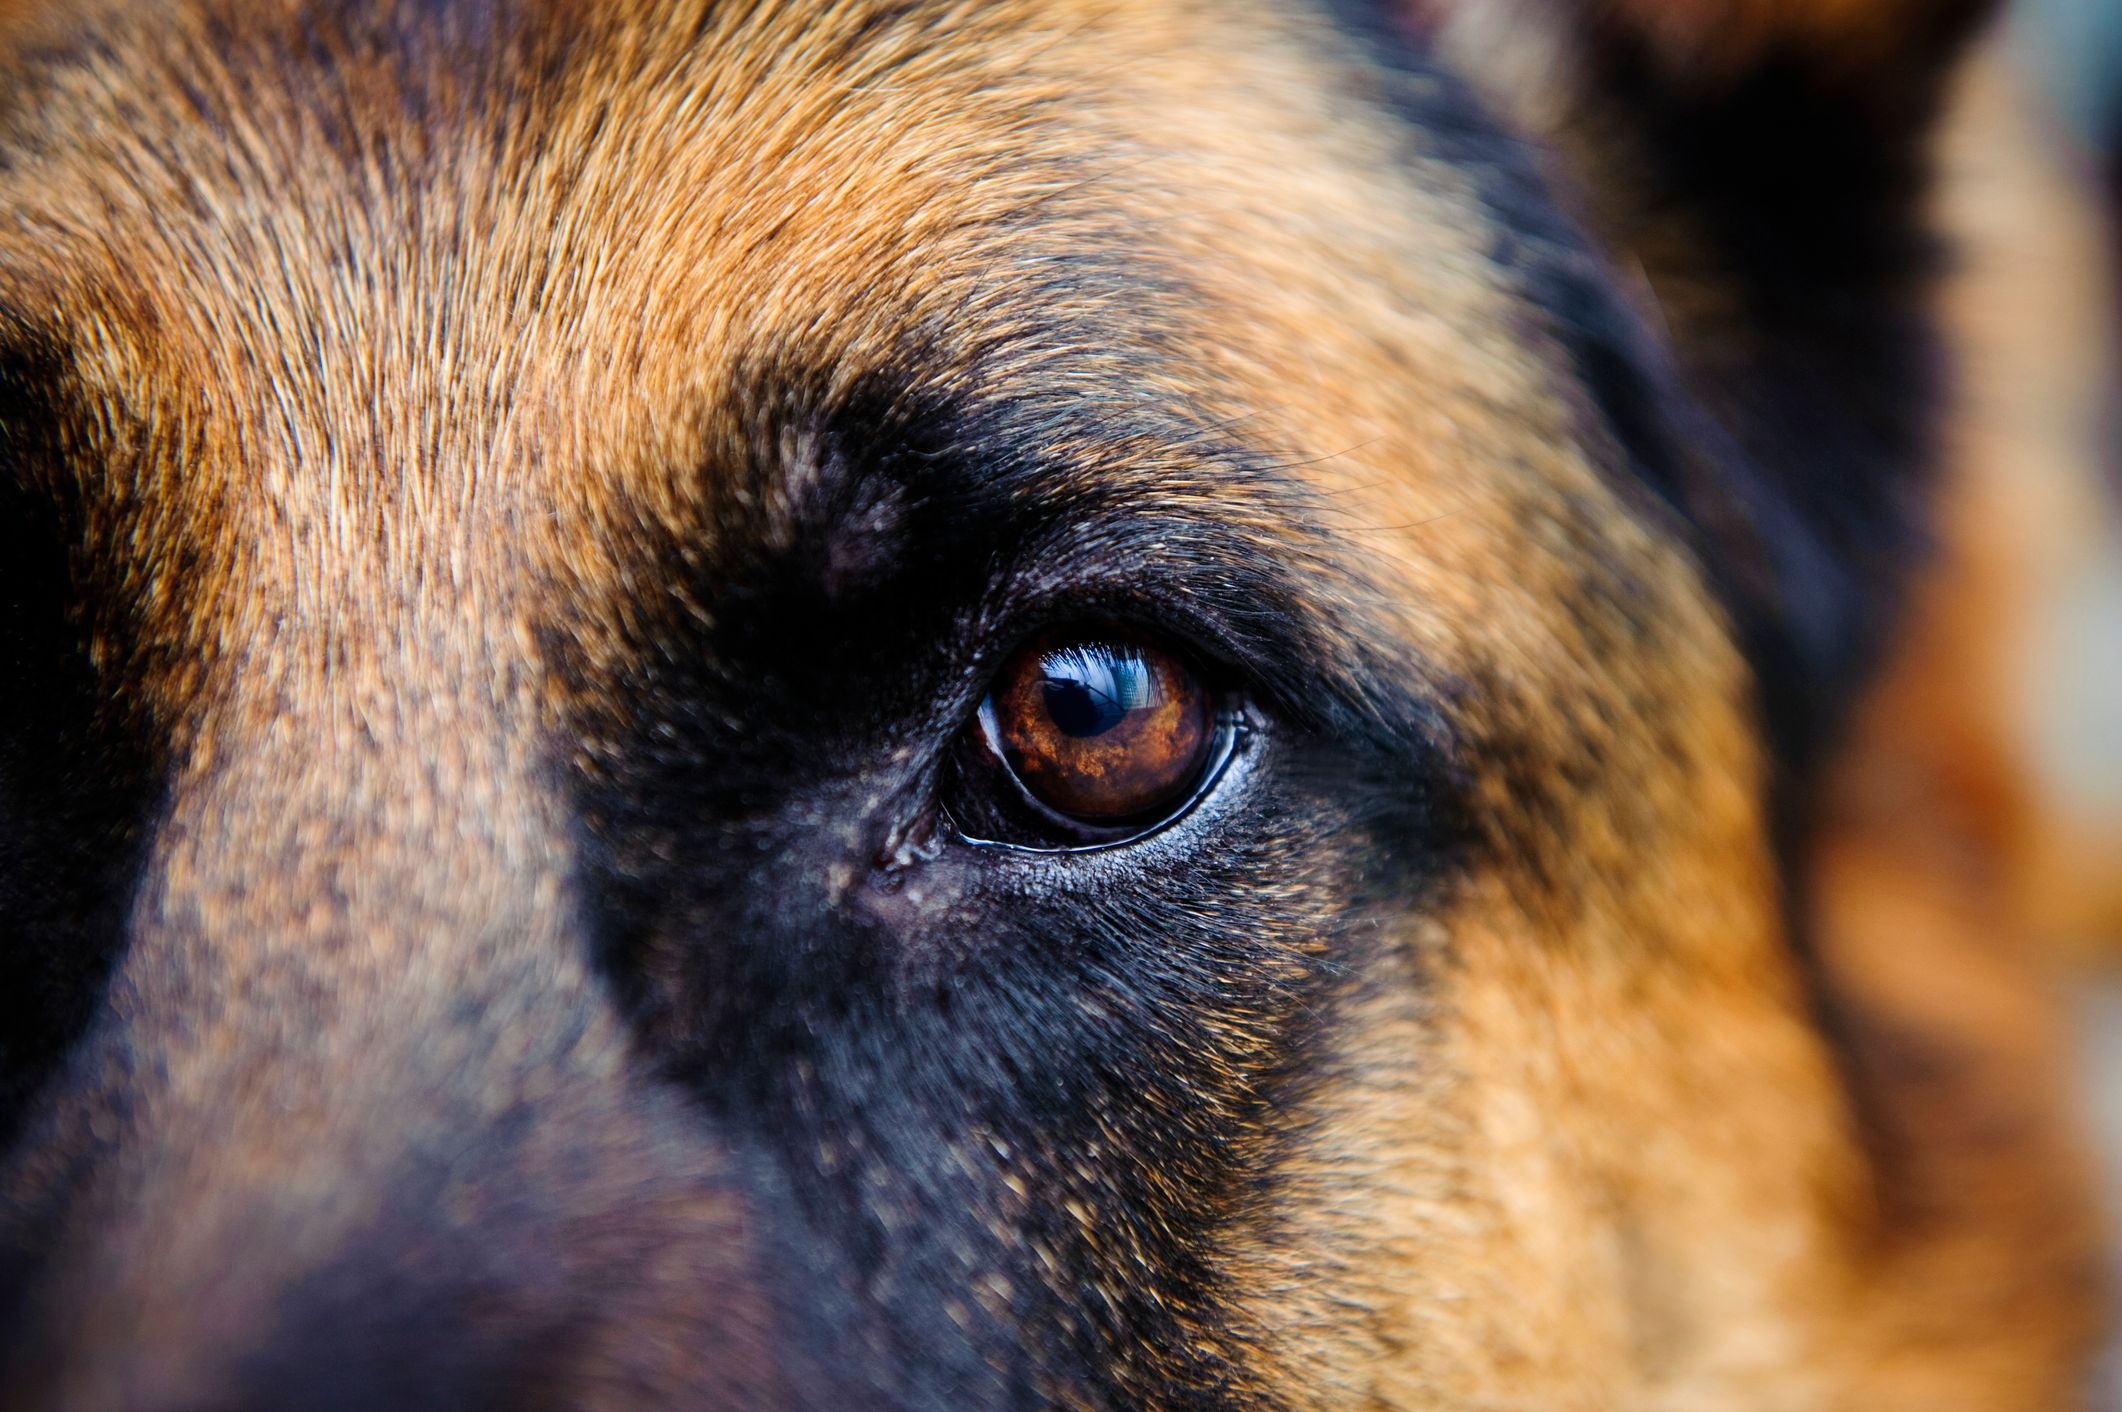 German Shepherd up close eye image